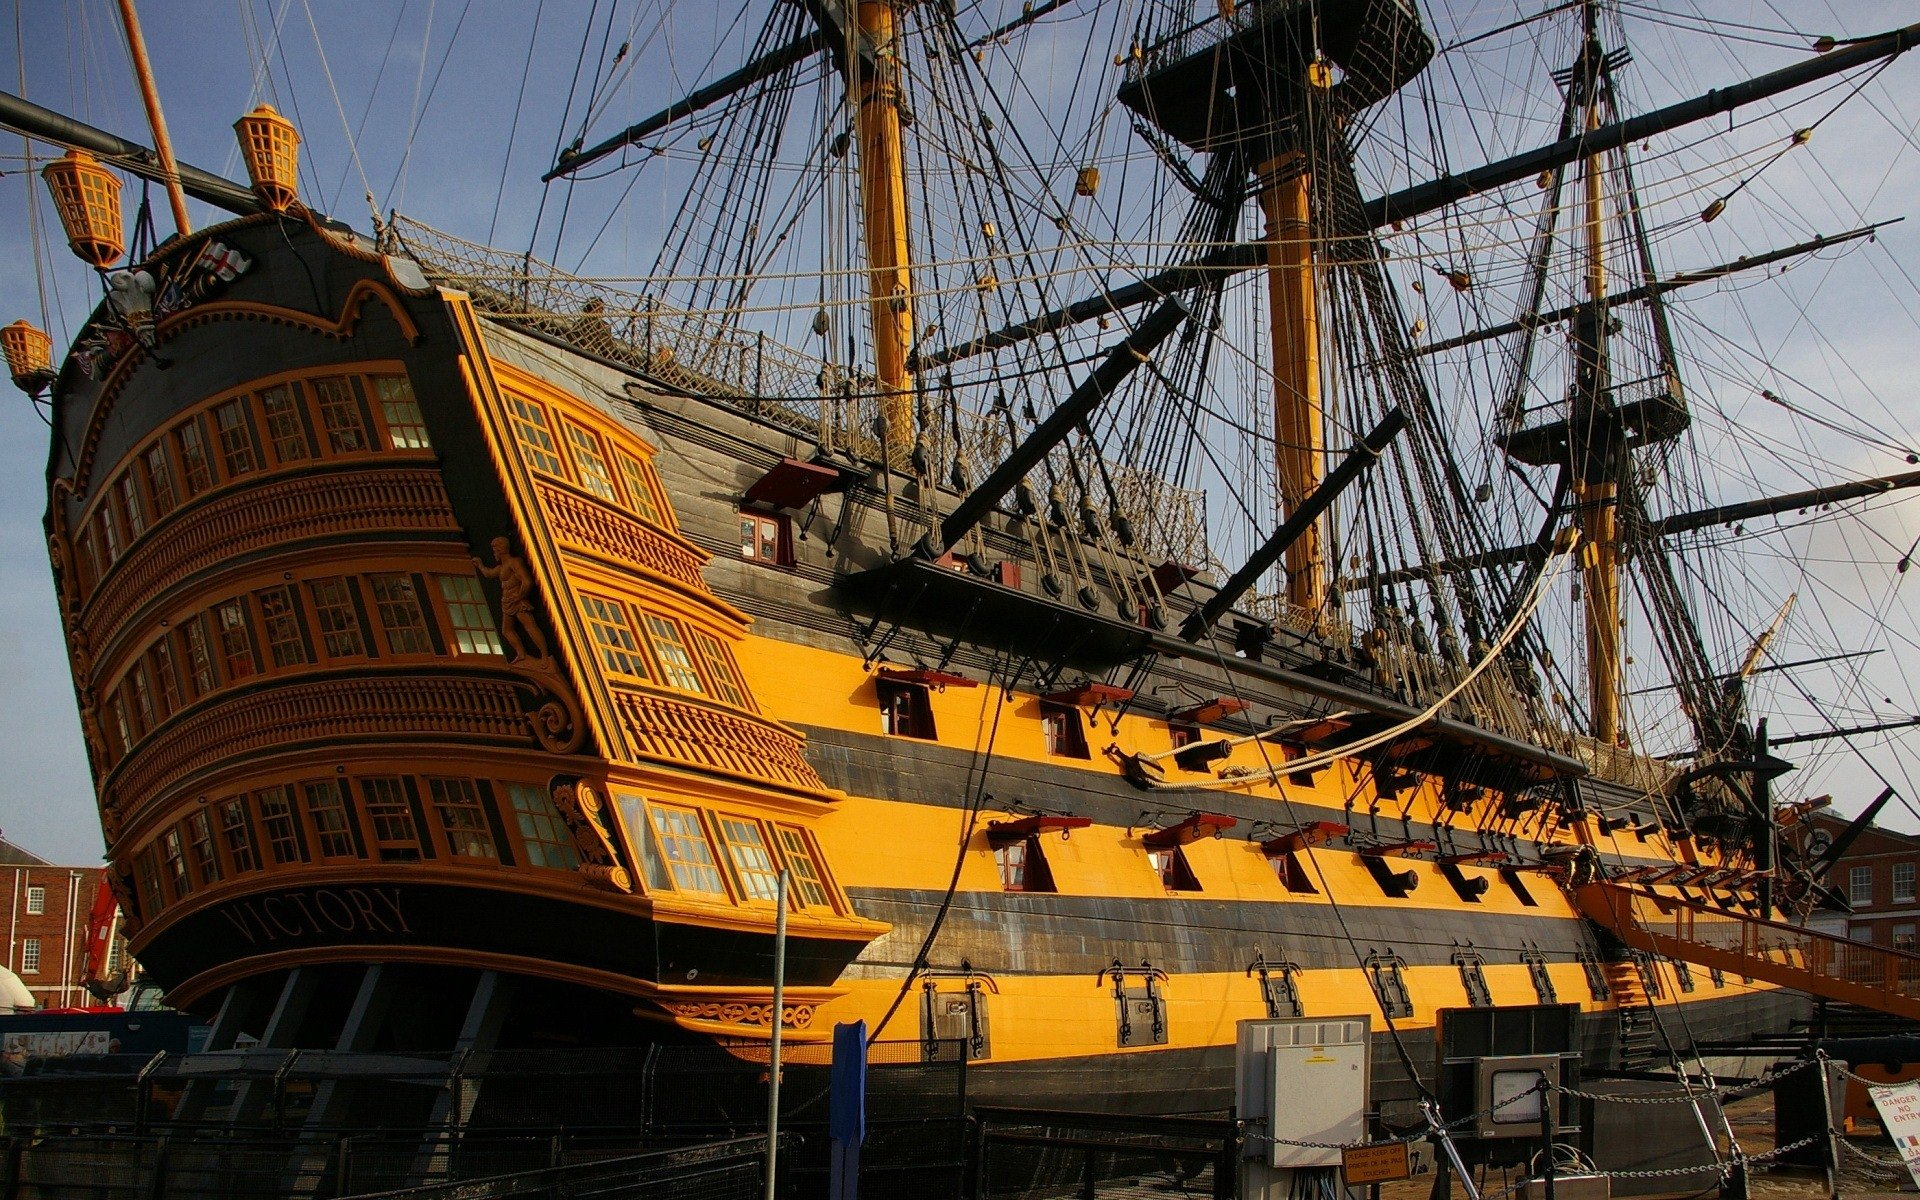 hms victory hd wallpaper and background image